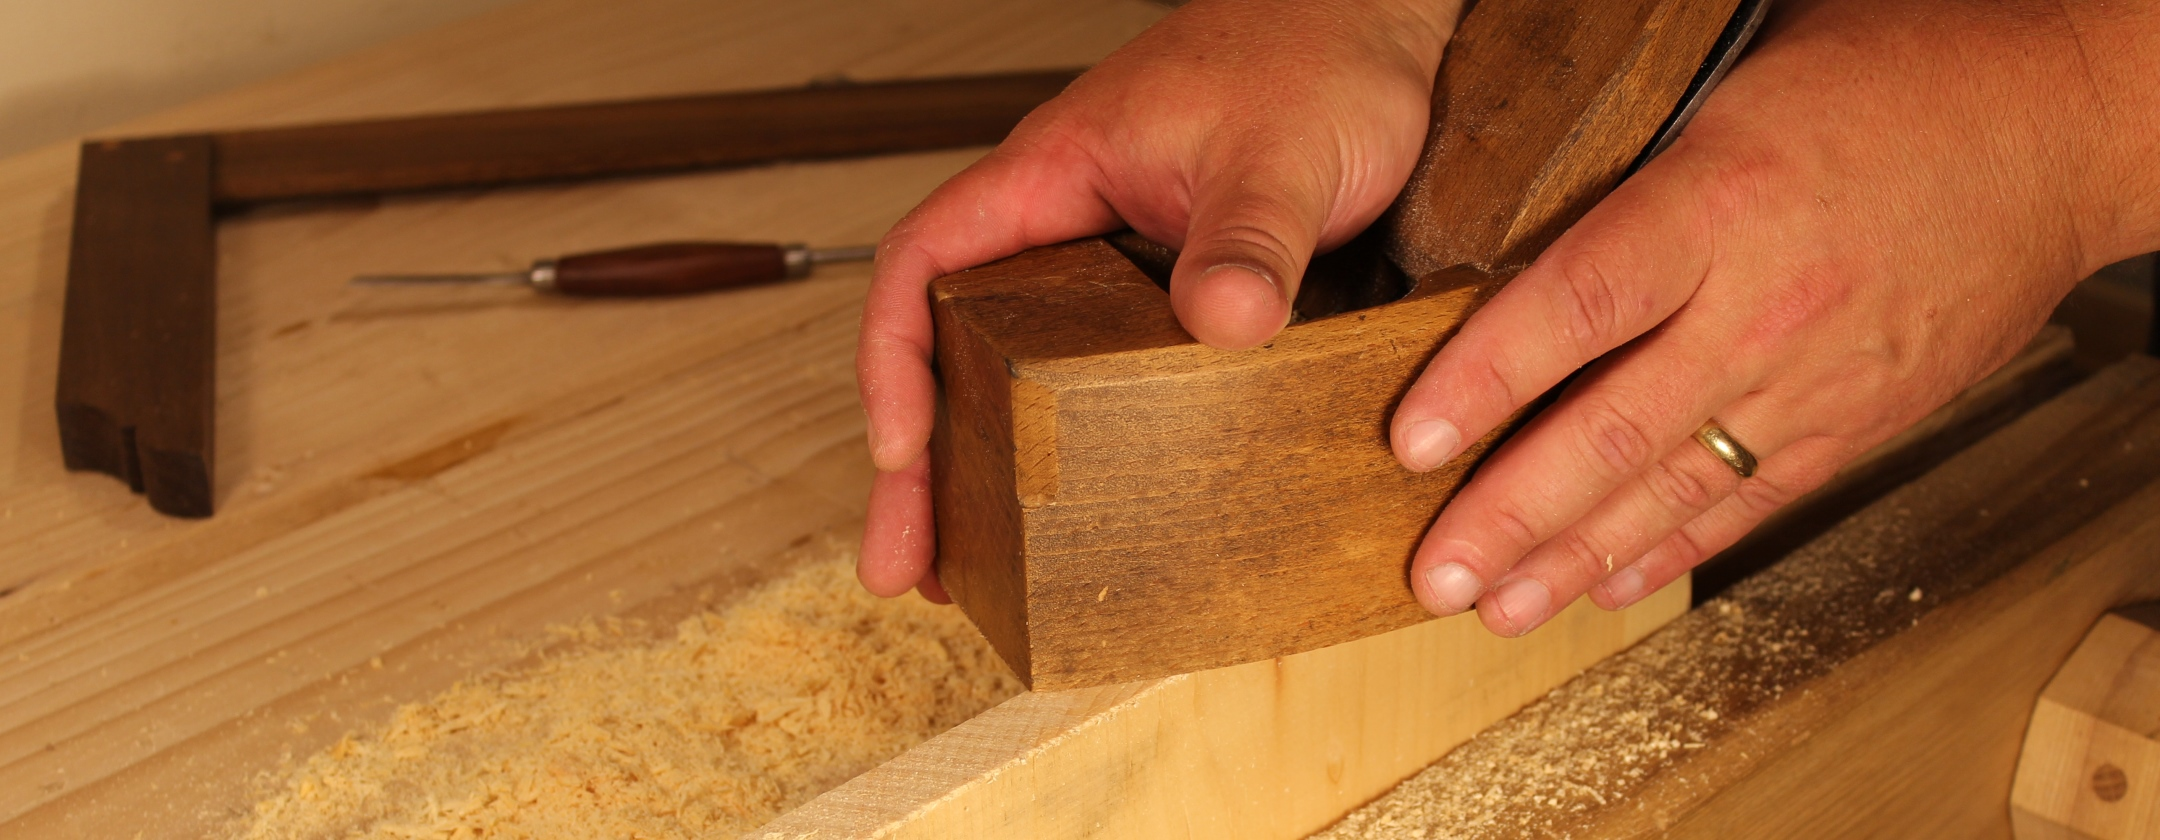 Using Wooden Hand Planes